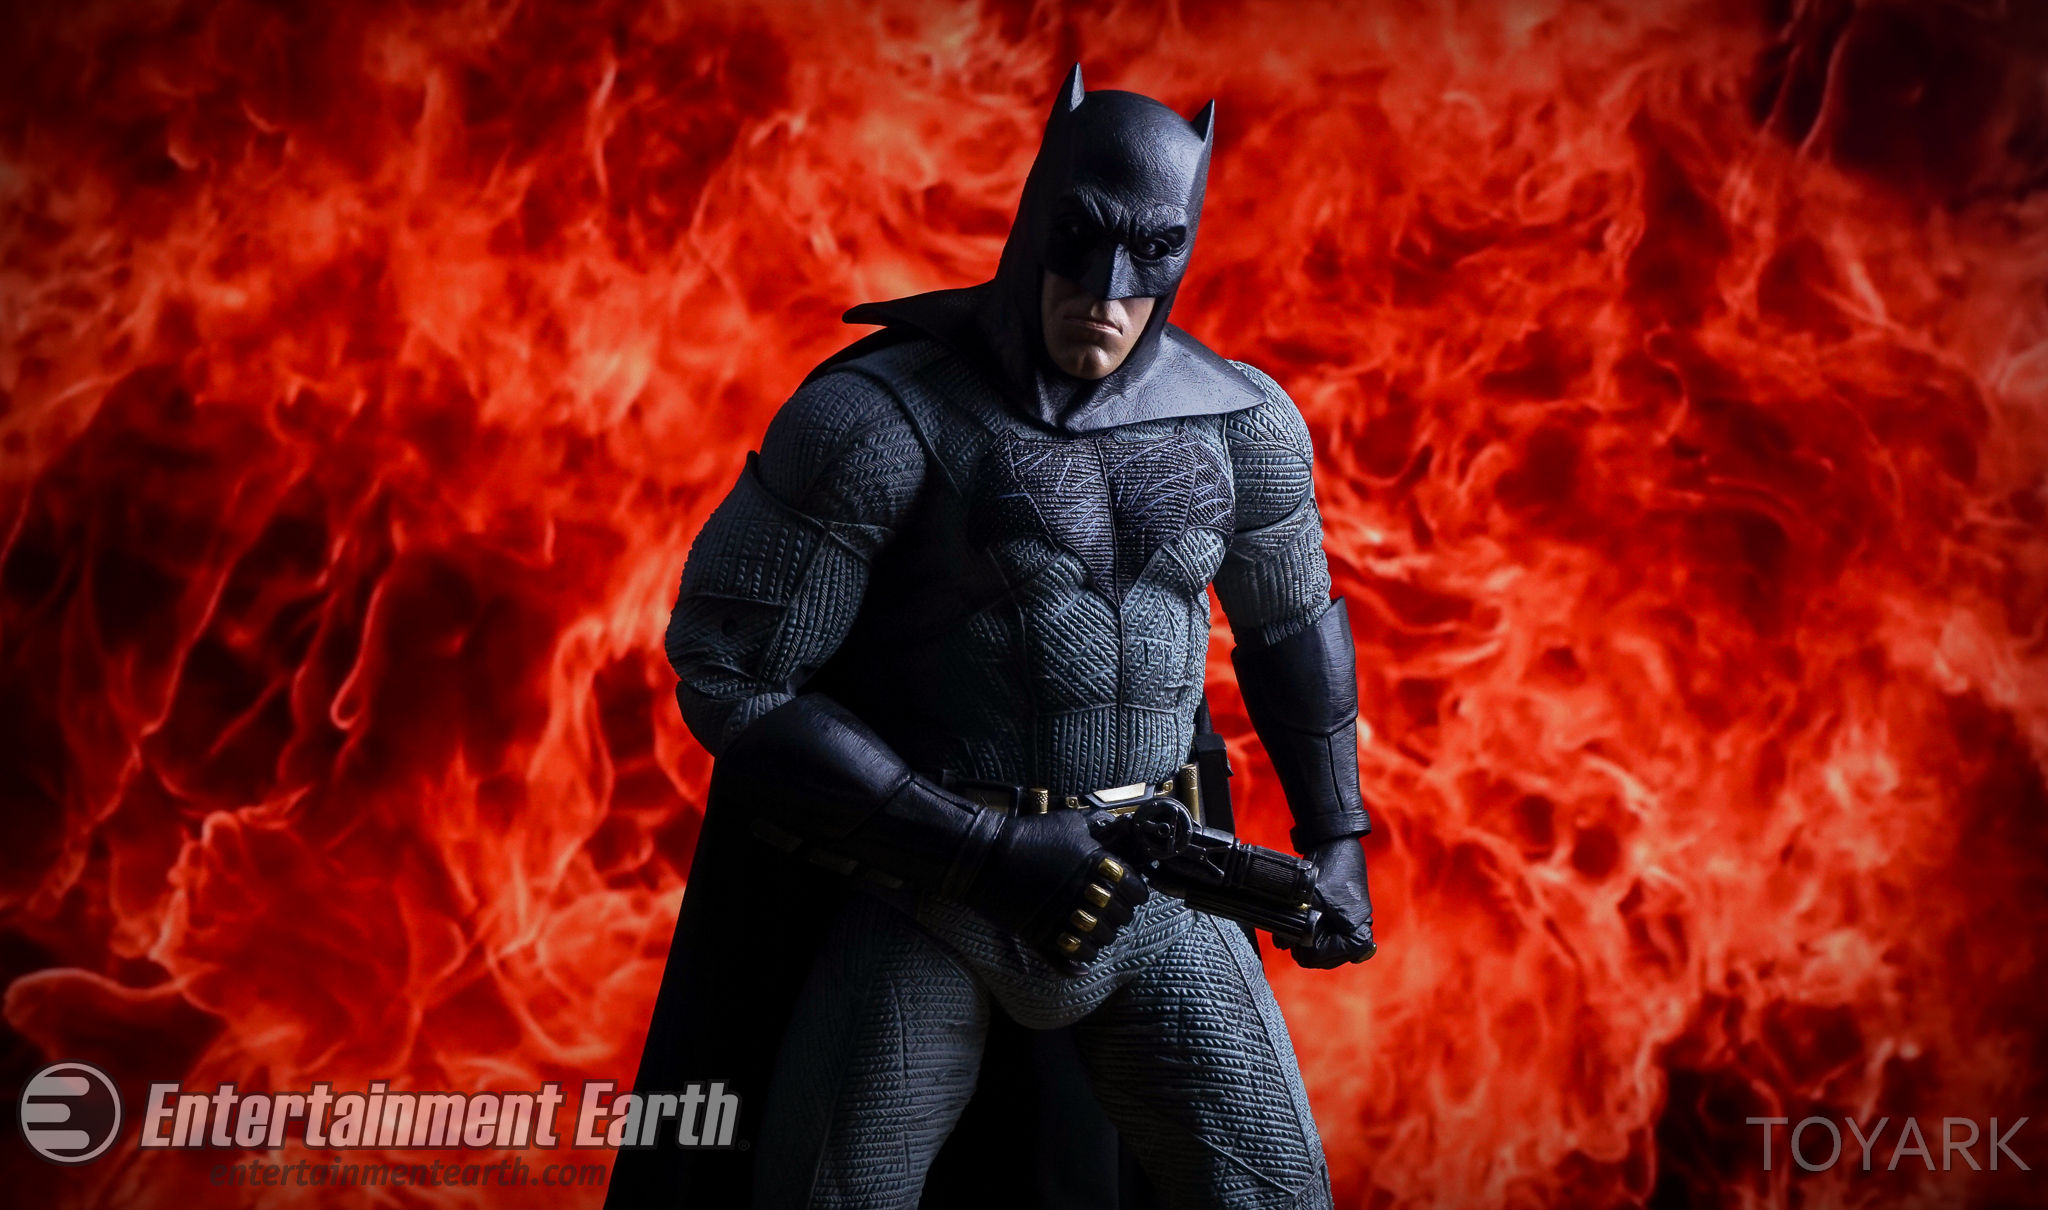 http://news.toyark.com/wp-content/uploads/sites/4/2016/06/NECA-BvS-Quarter-Scale-Batman-056.jpg